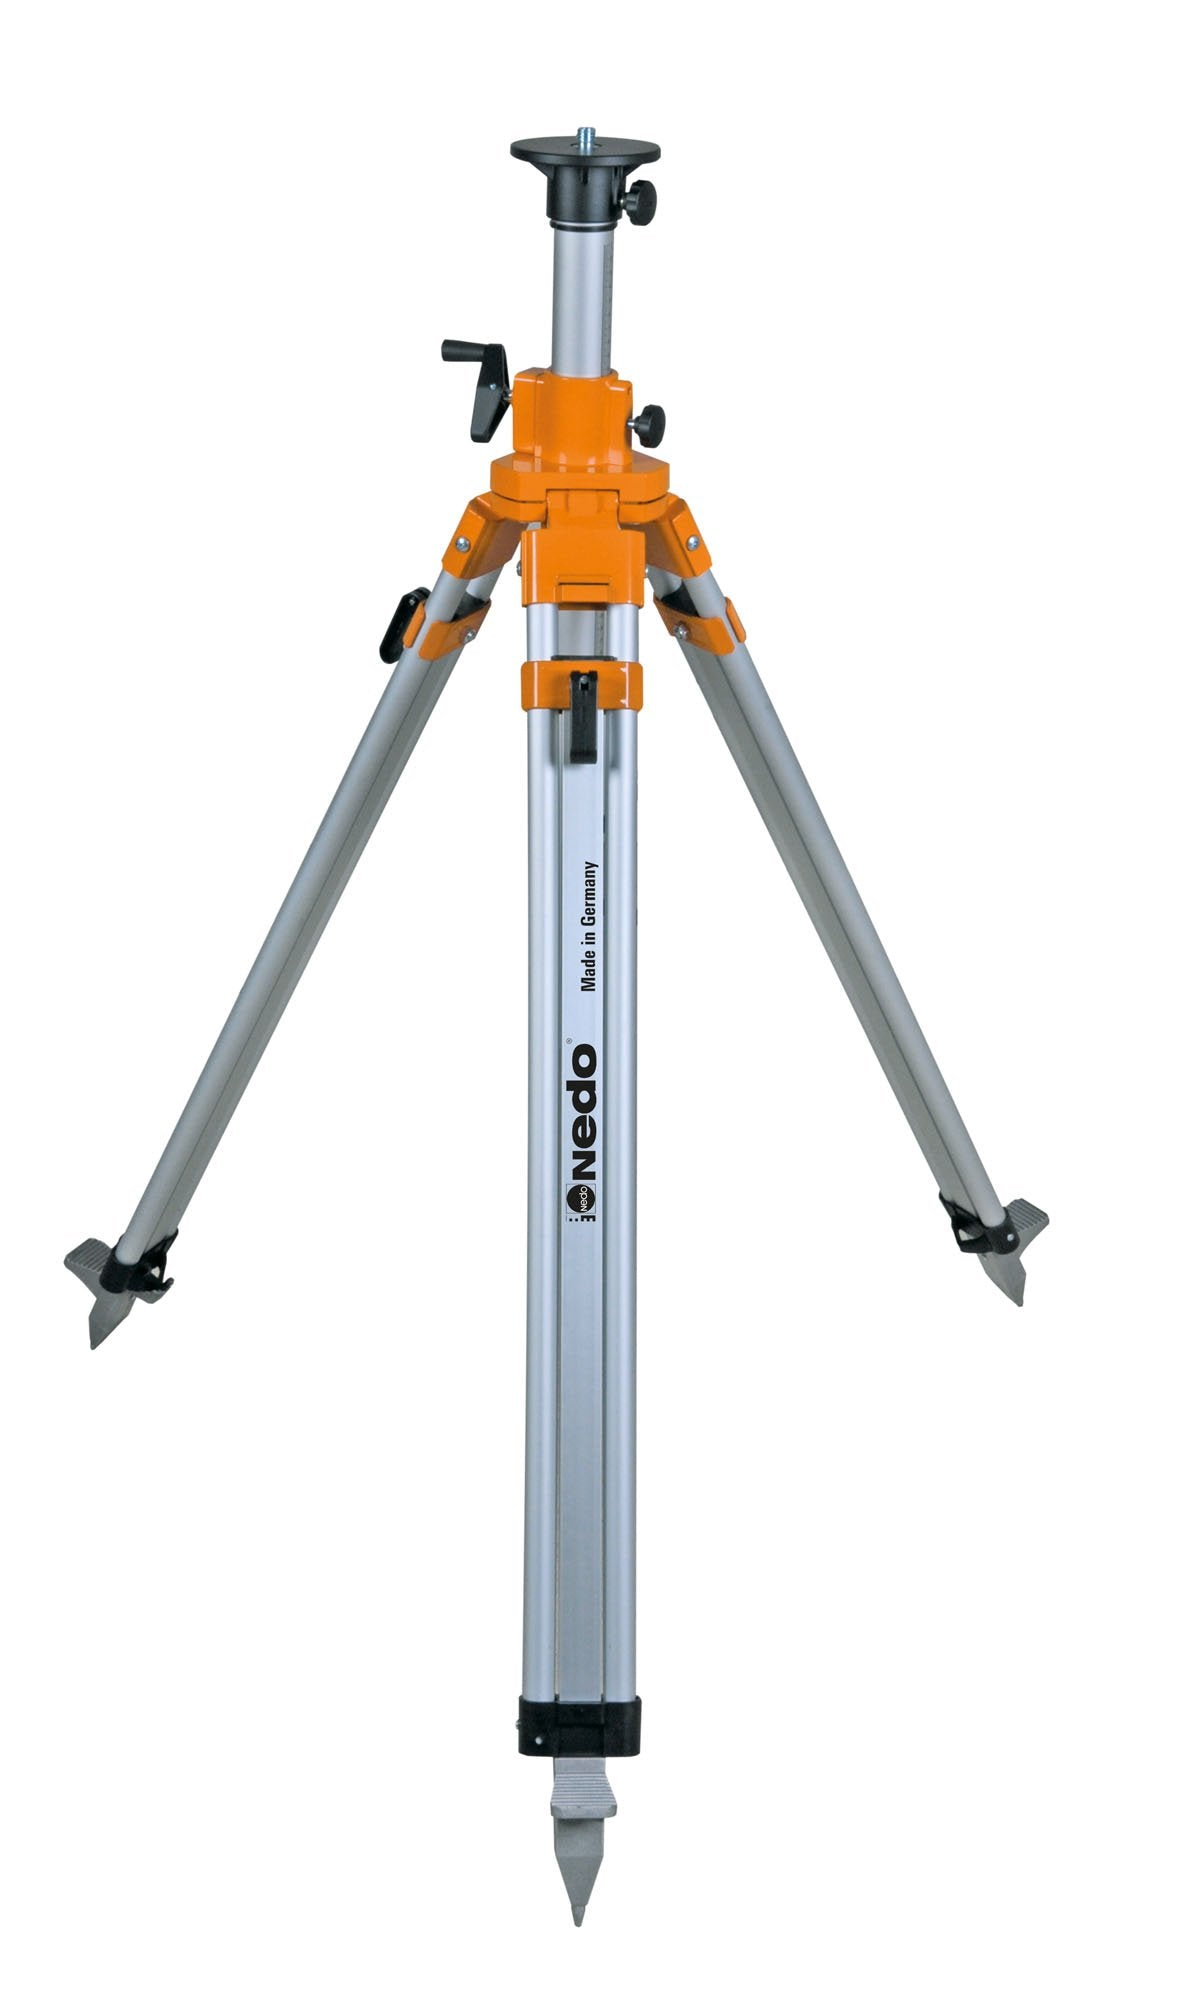 "Nedo 35.4"" to 93"" Heavy-Duty Elevating Tripod - 210676-185"